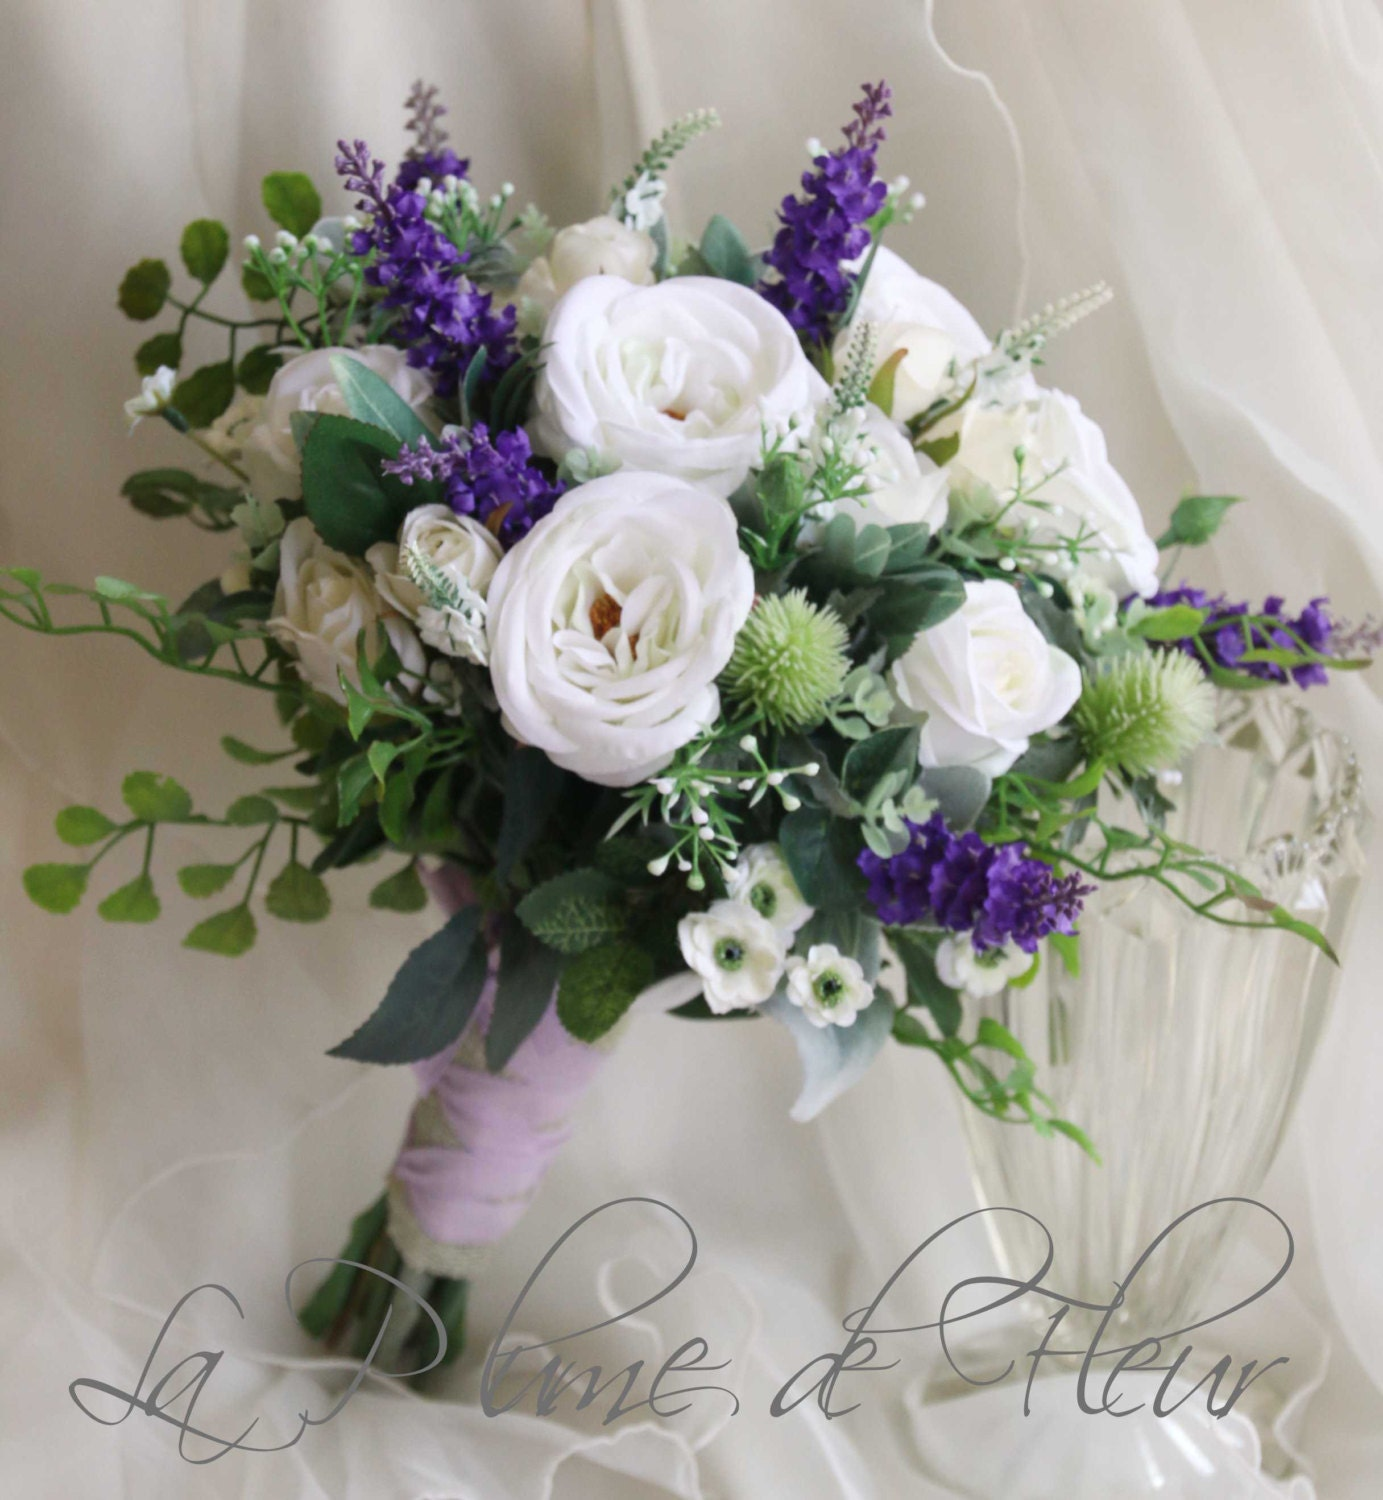 Scottish wedding bouquet silk flower bouquet white purple zoom mightylinksfo Gallery